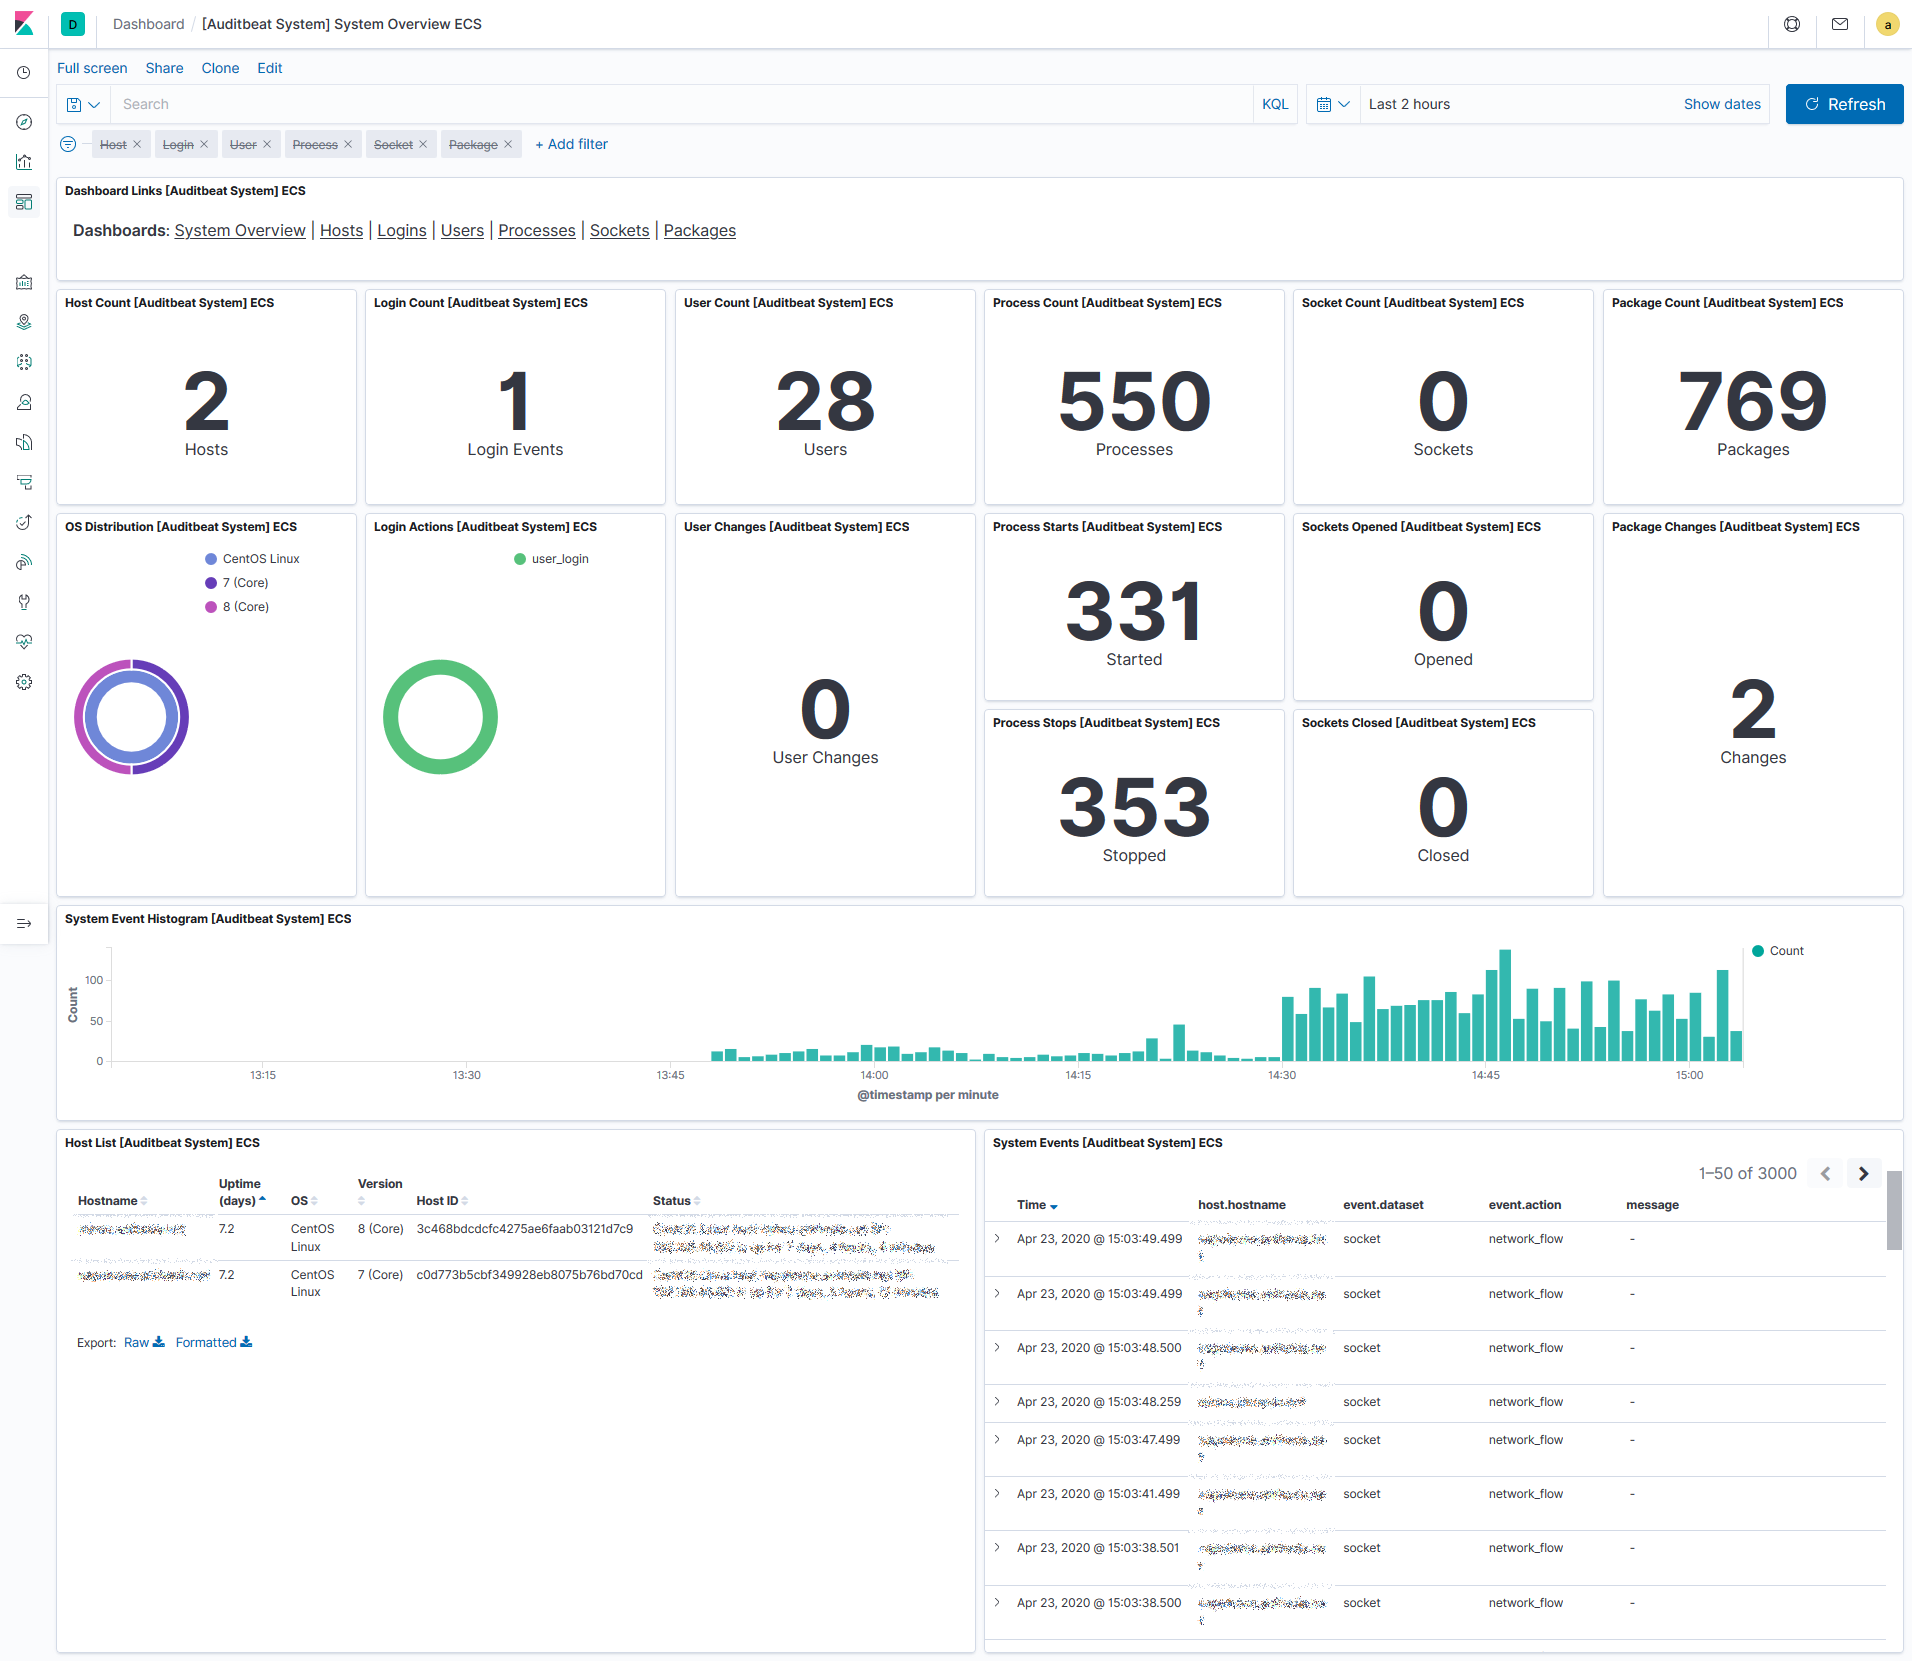 kibana auditbeat dashboards overview